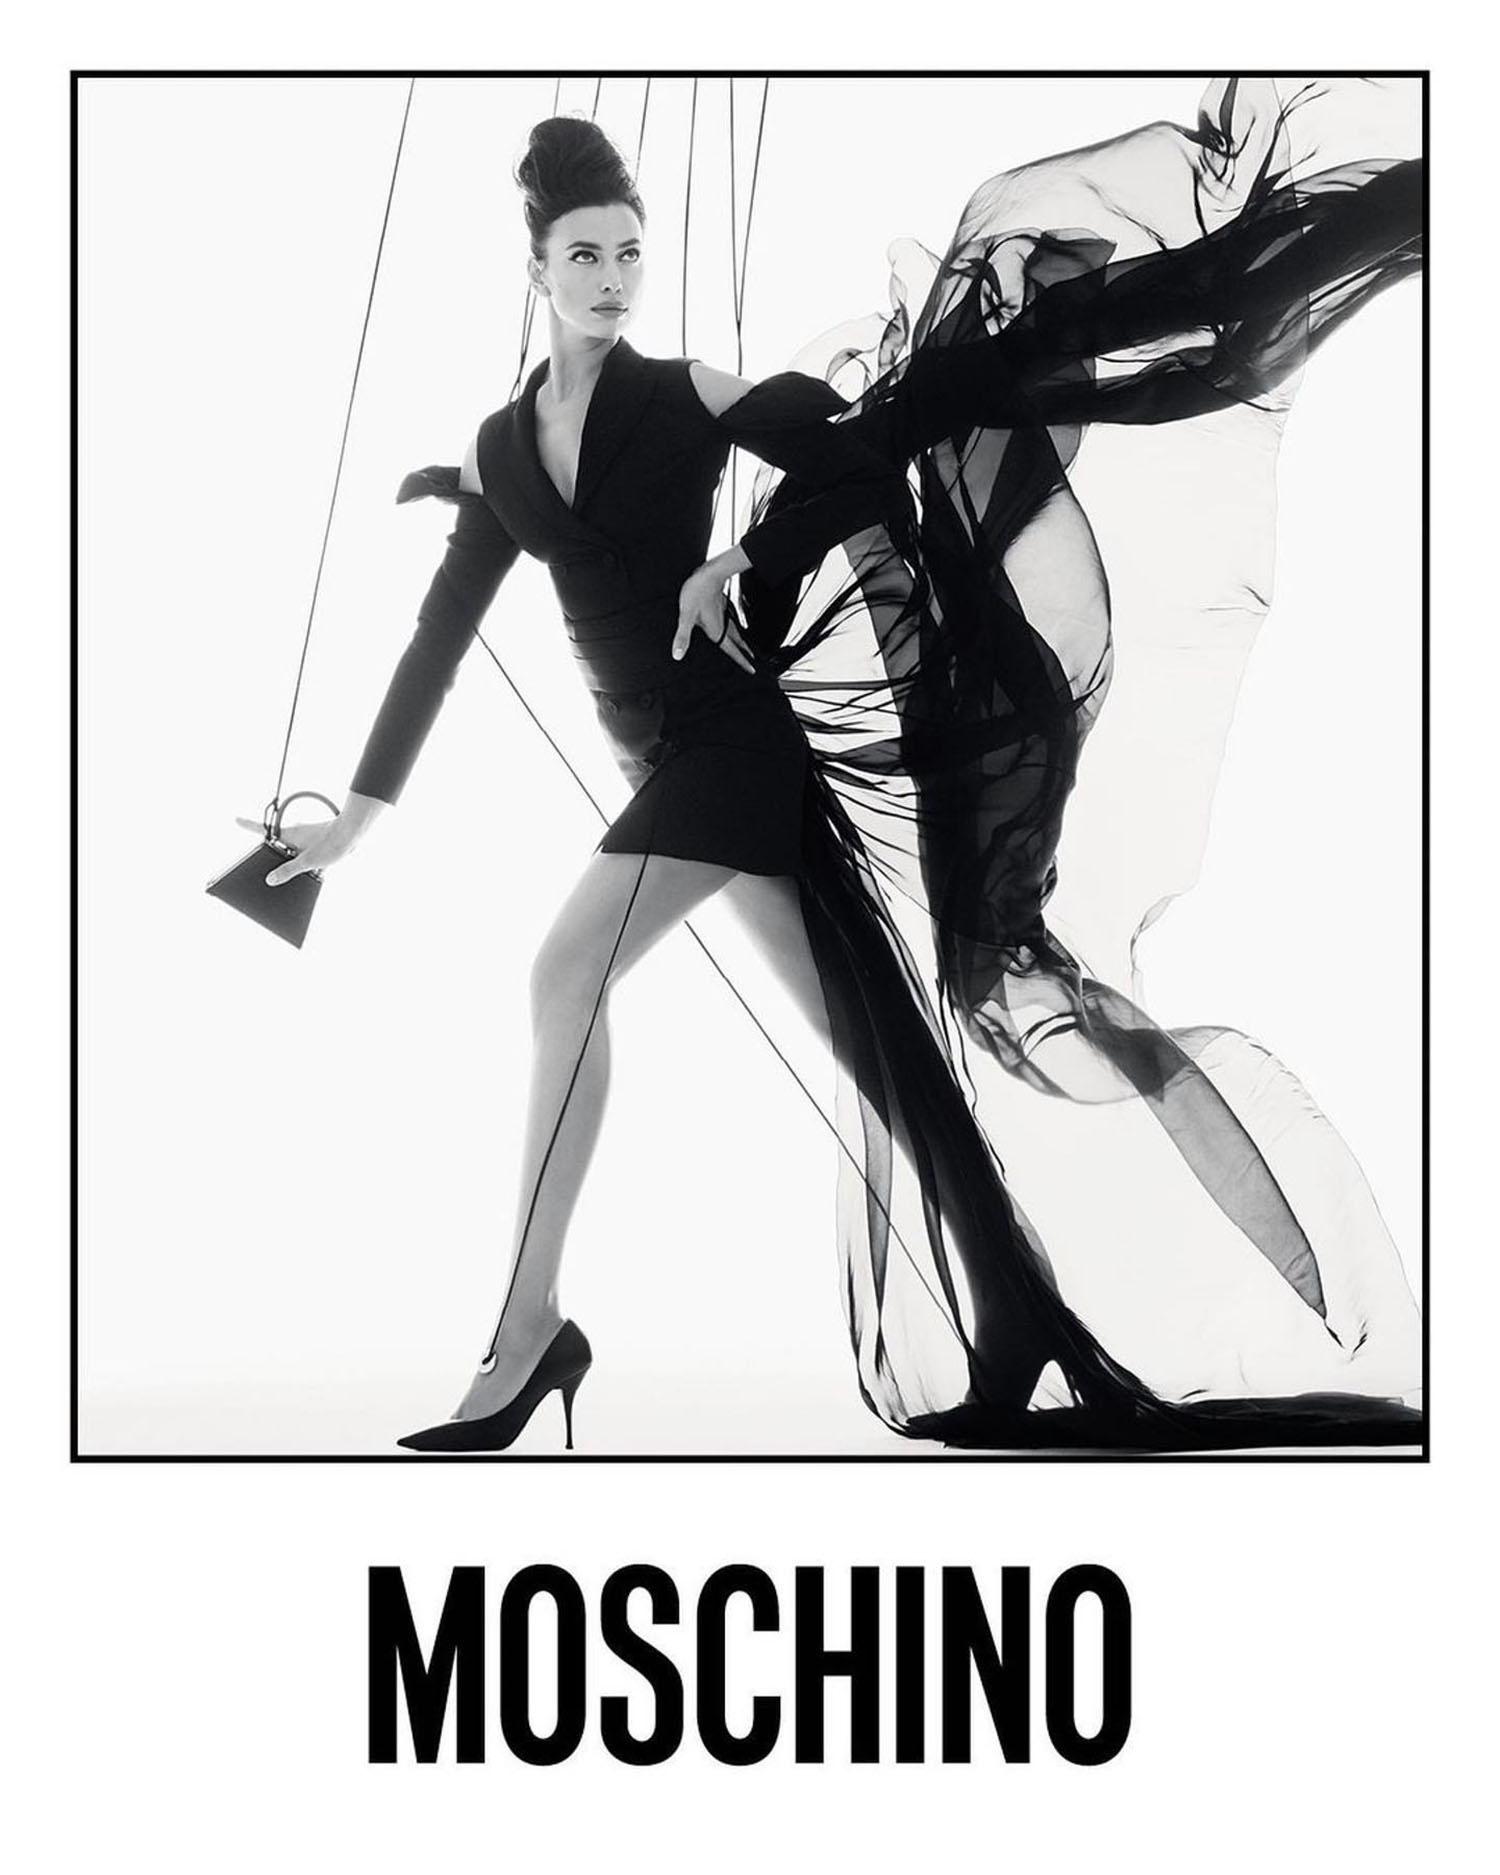 Moschino Spring Summer 2021 Campaign